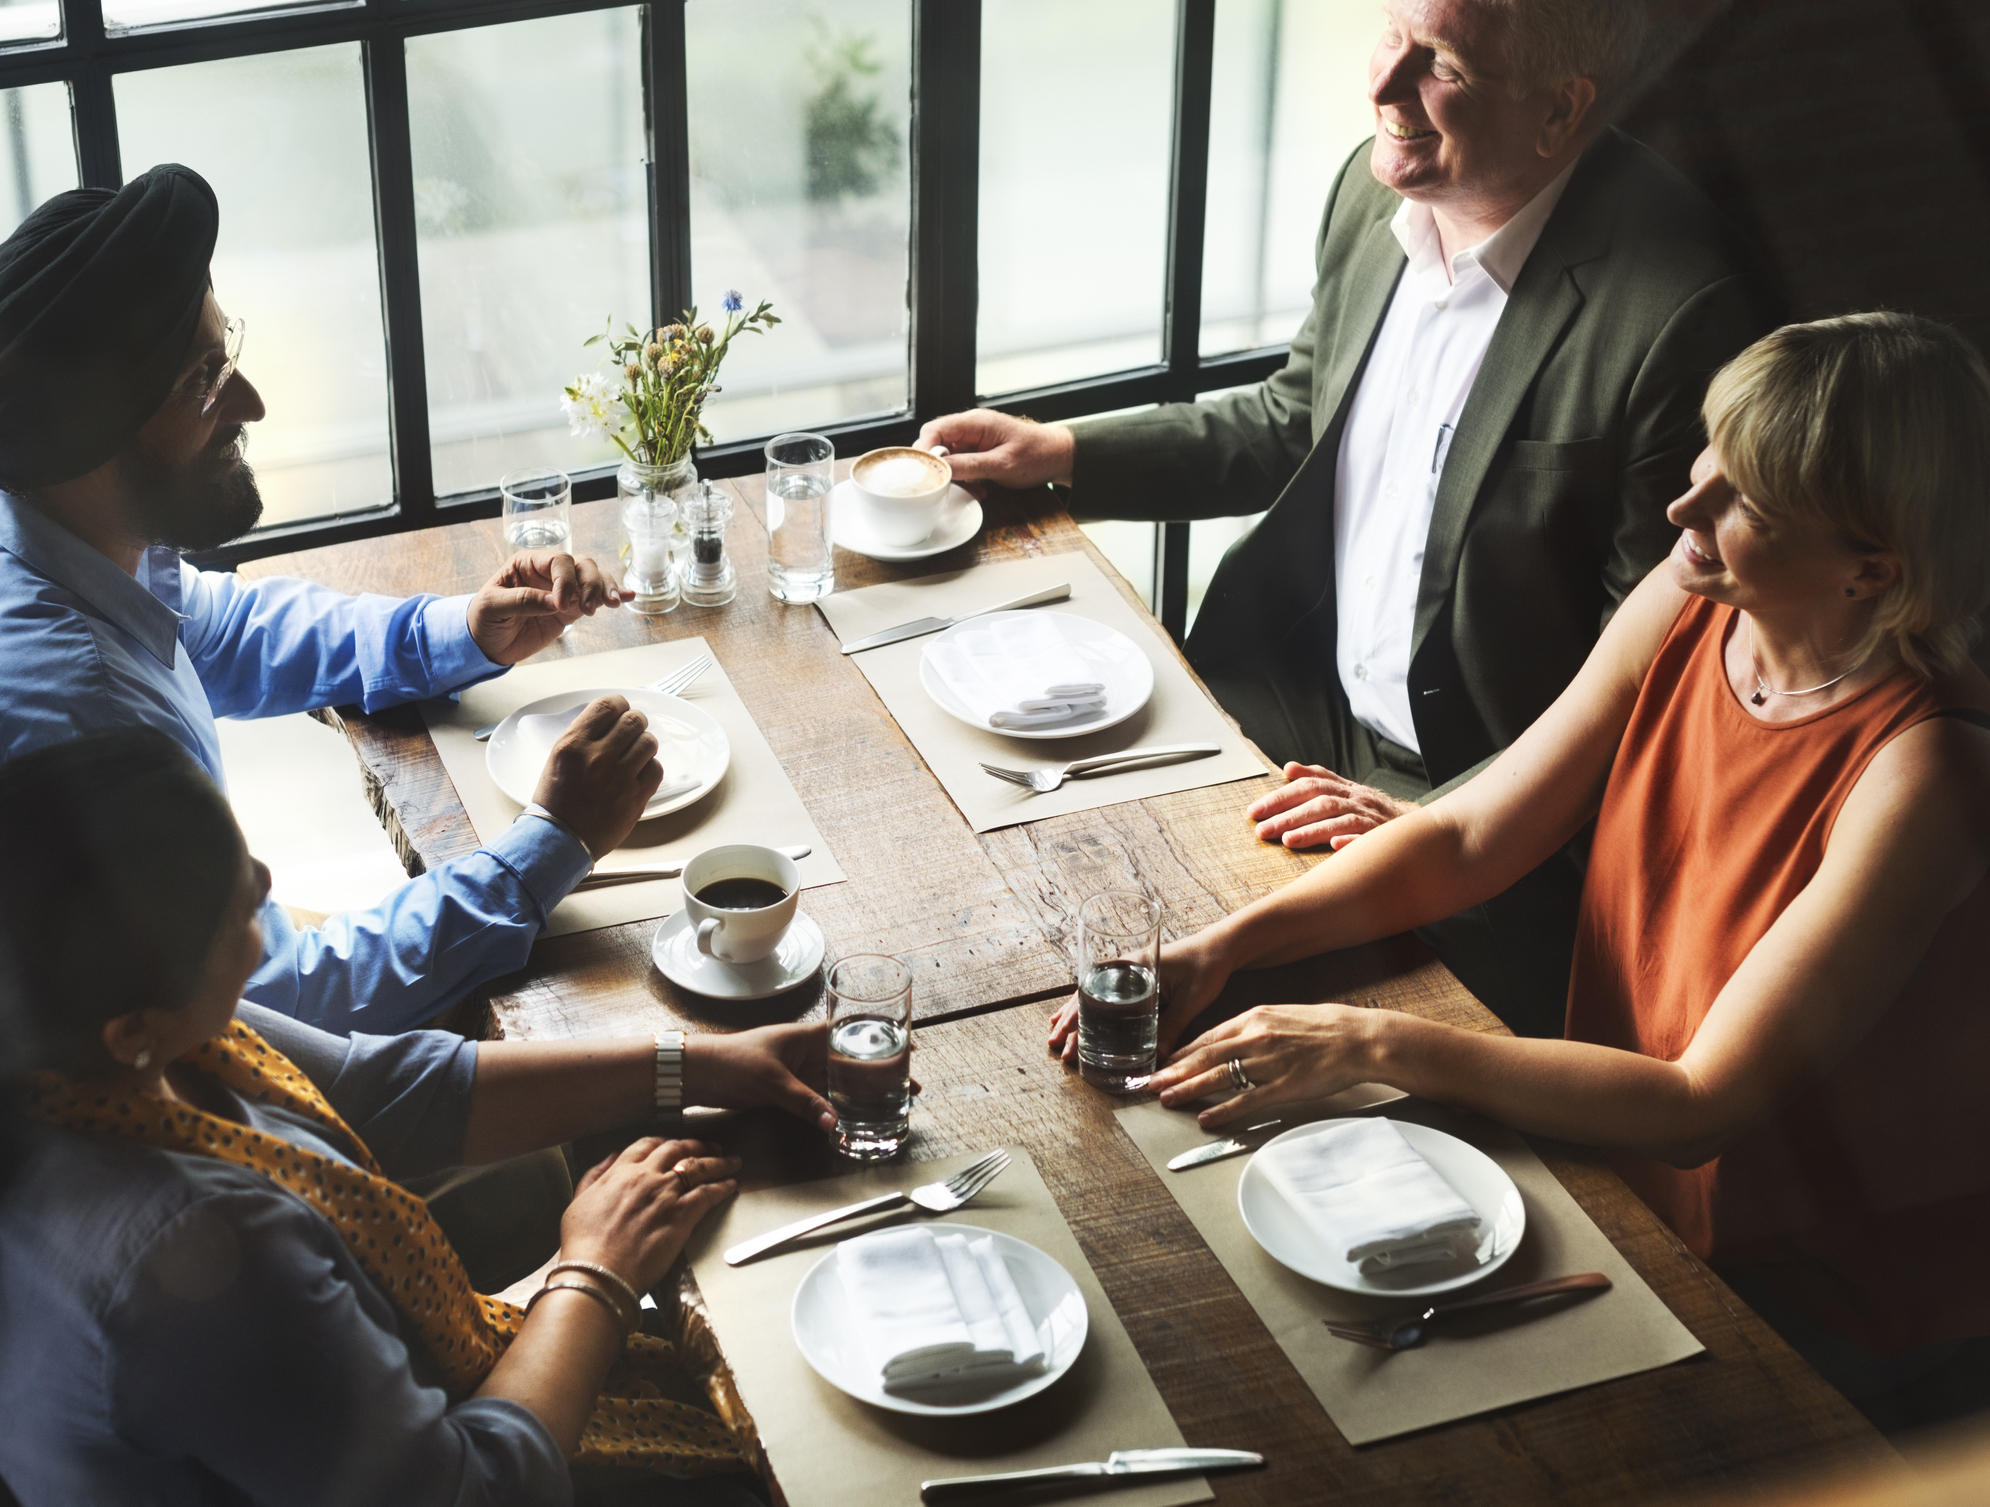 Face-to-Face Trust - Accelerate your business relations through these faciliated group dinners and reap the reward. It often takes years for peer-to-peer relationships to consolidate and experience organic and healthy growth. But with a Dinner Meeting, with the ease of a great meal and facilitated, natural conversation - the window is much more open.